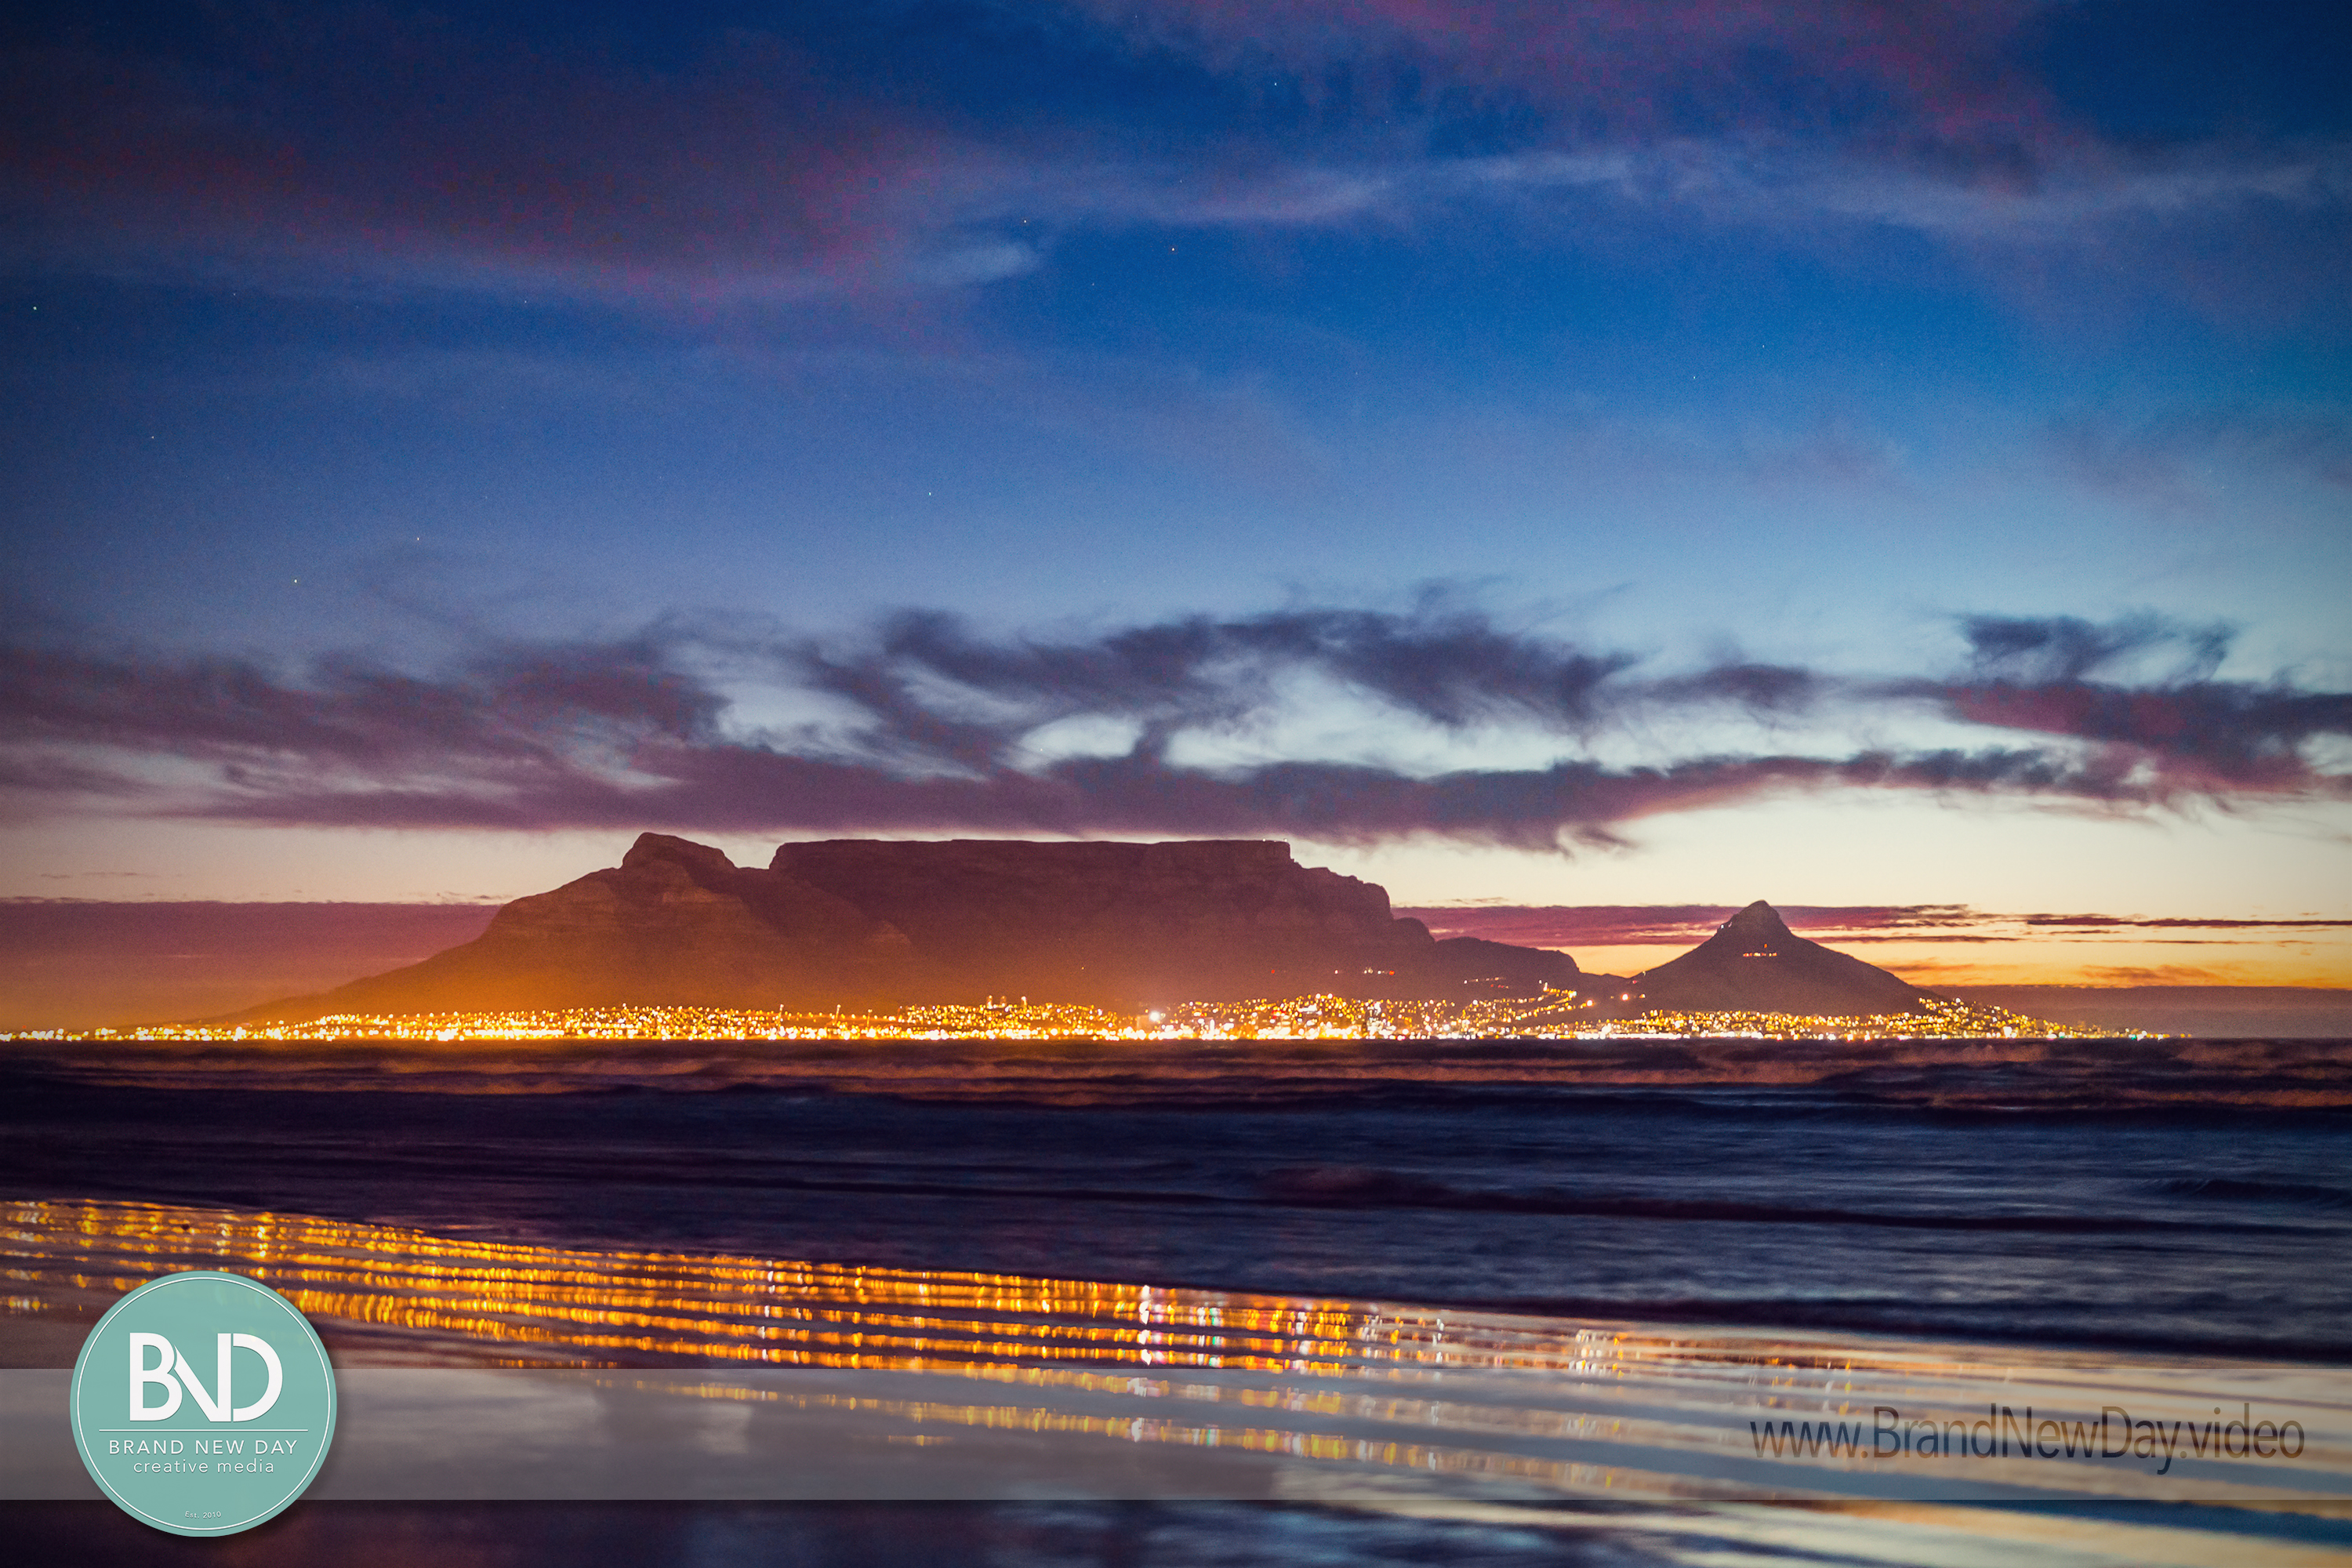 Cape Town splendor - We travel